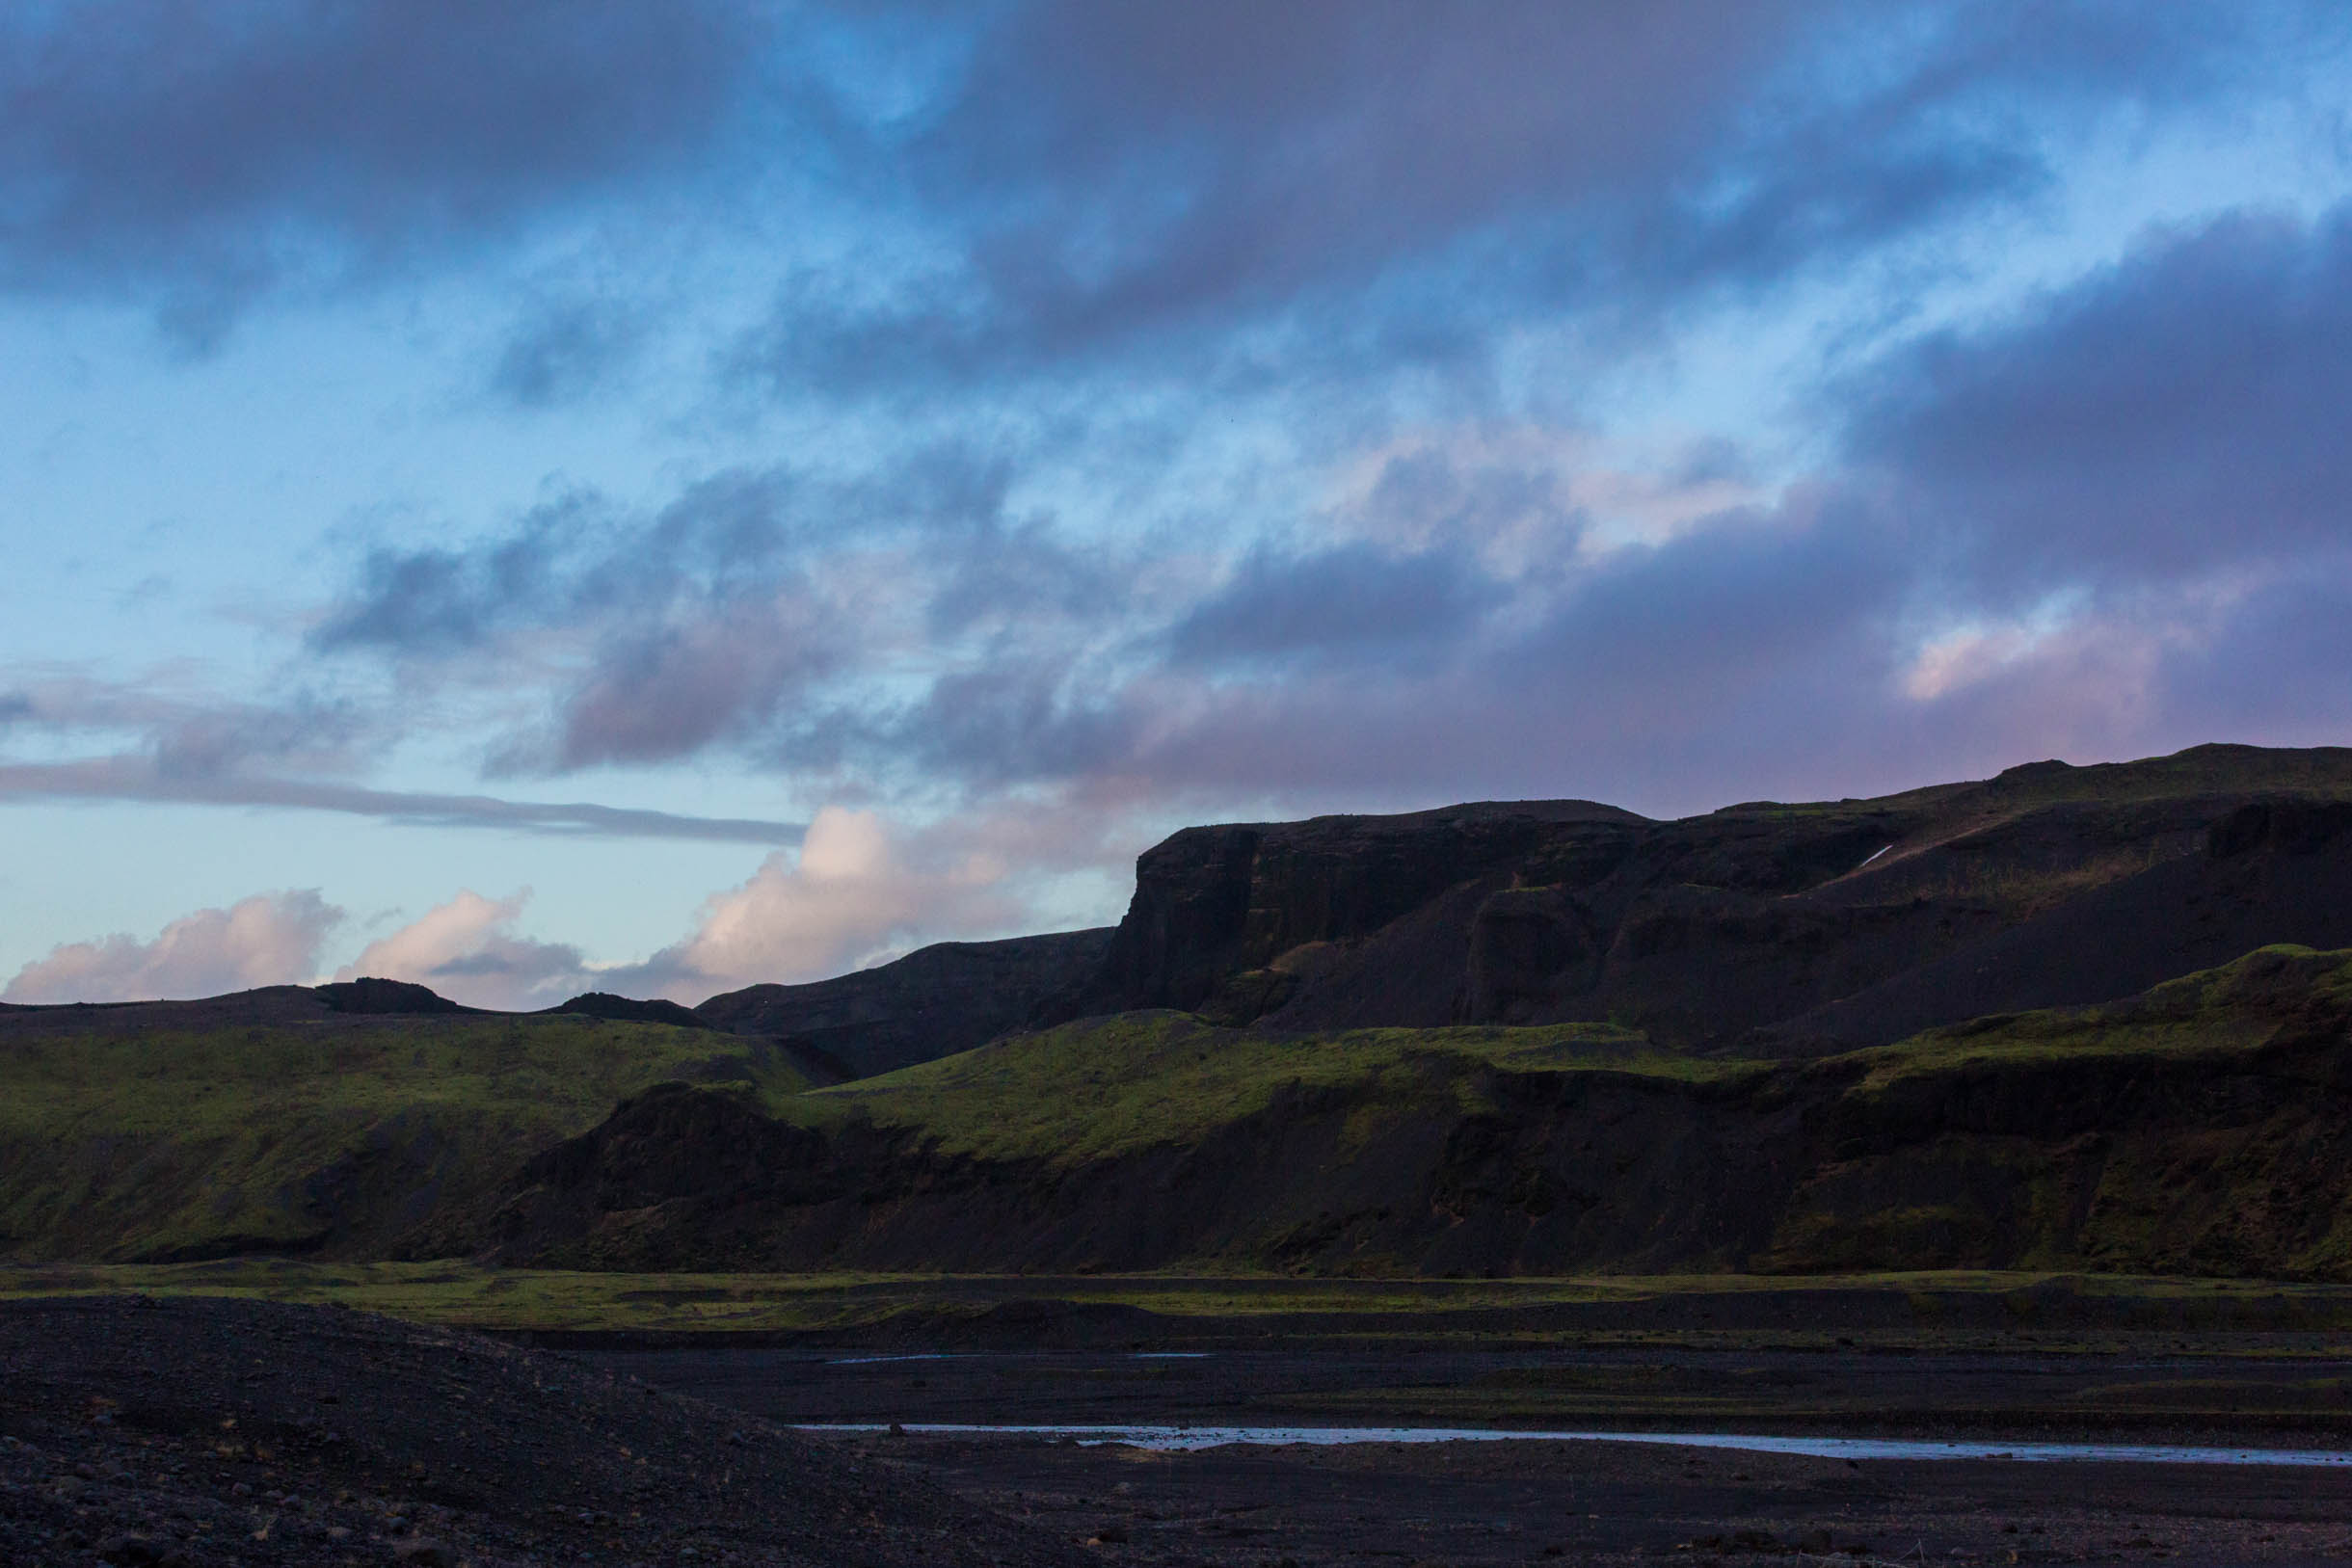 sólheimajökull Pictures from exploring the south coast of Iceland